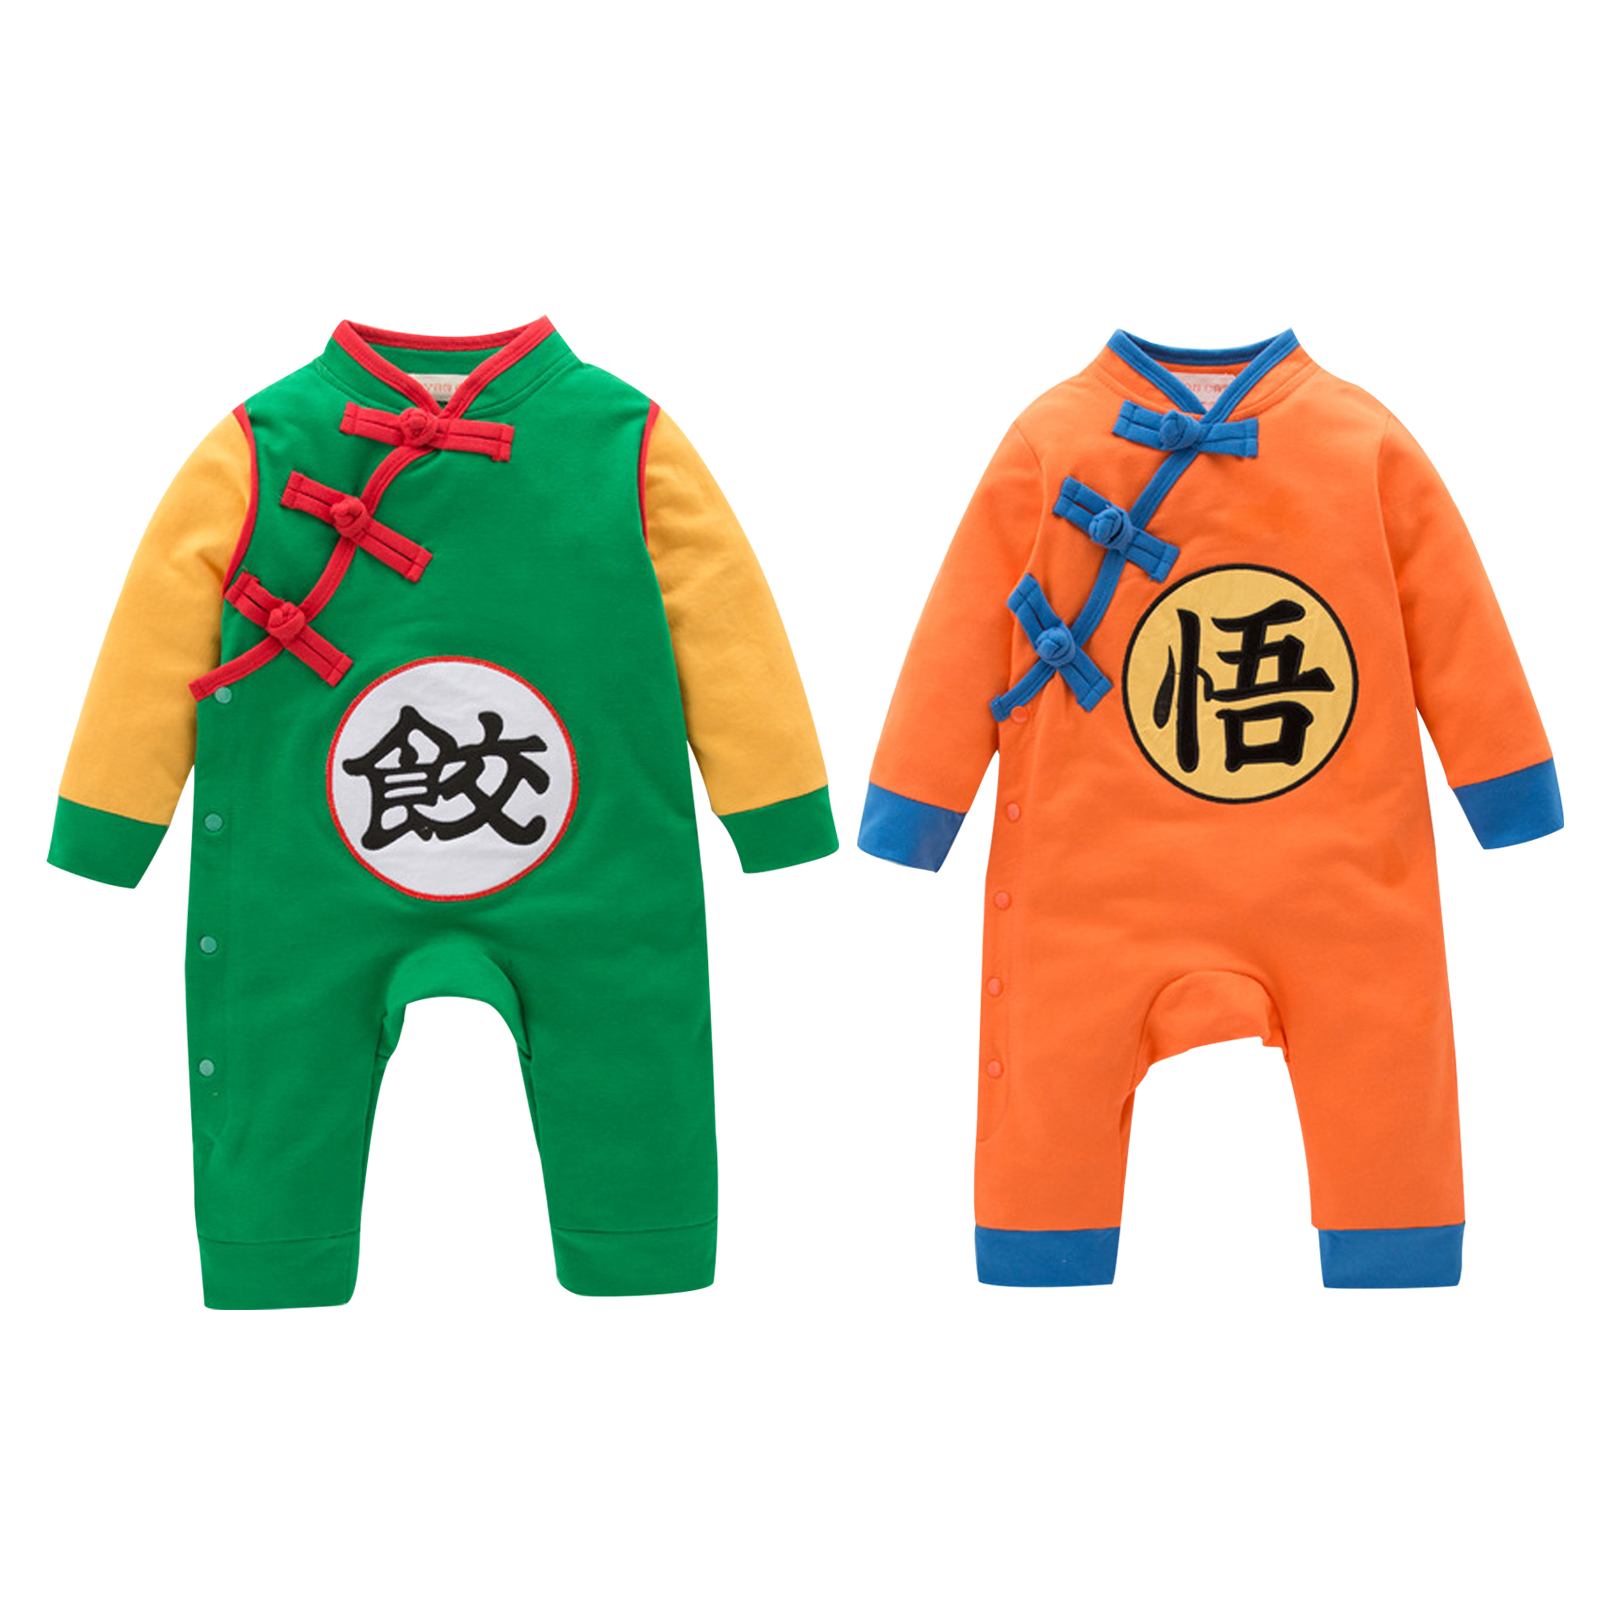 901cabecab0 Details about Kids Romper Jumpsuit Outfit Baby Boy Halloween Fancy Party  Dragon Ball Costume